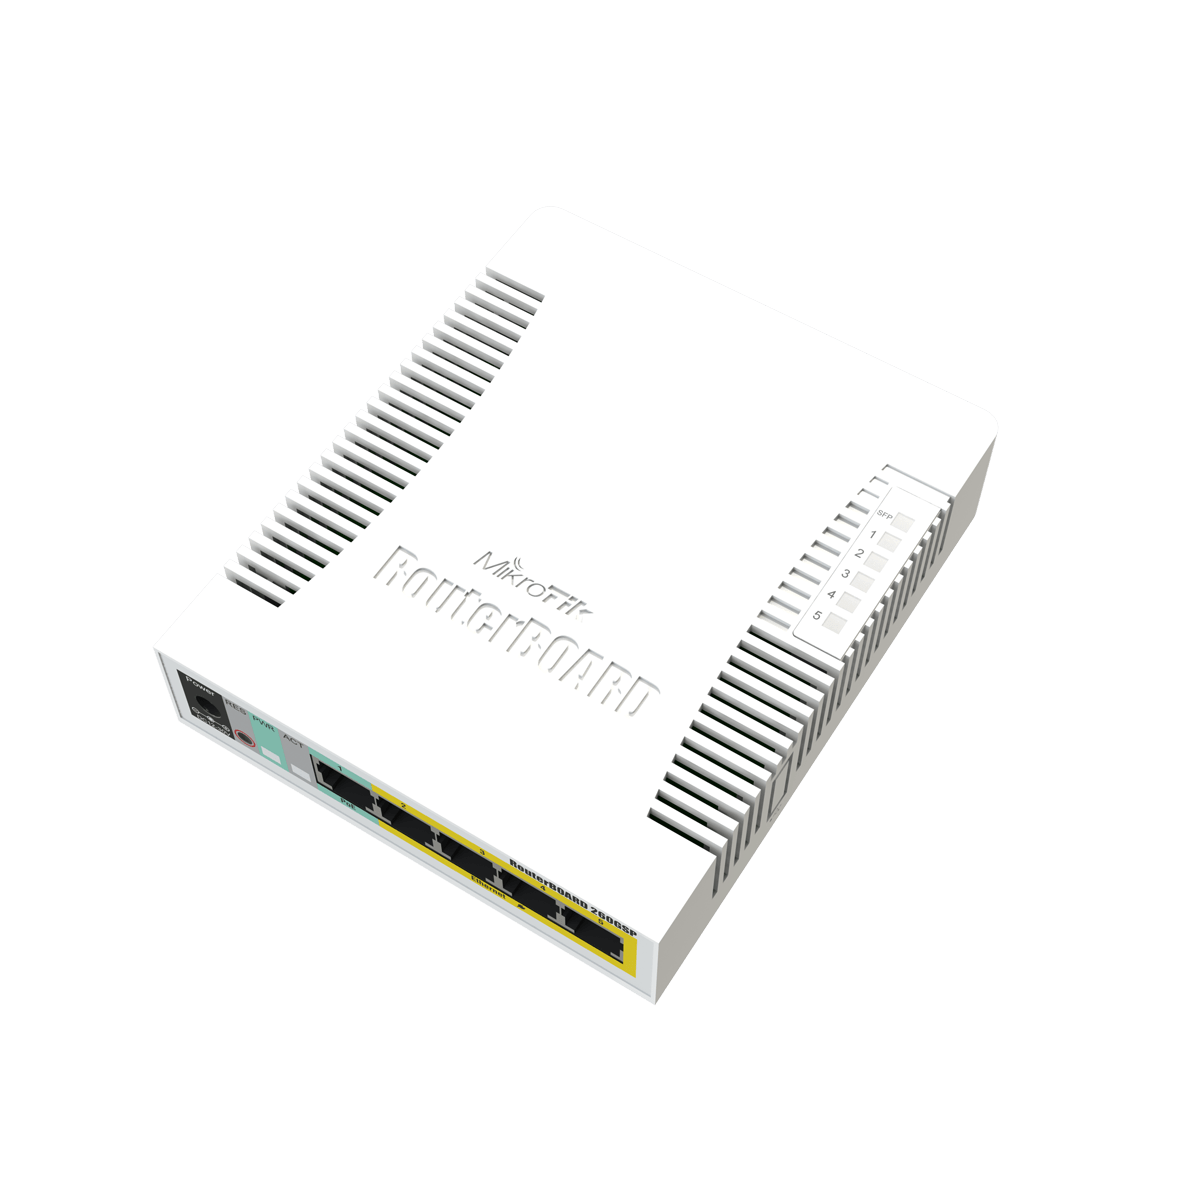 Mikrotik RouterBoard RB260GSP Smart Gigabit Switch with